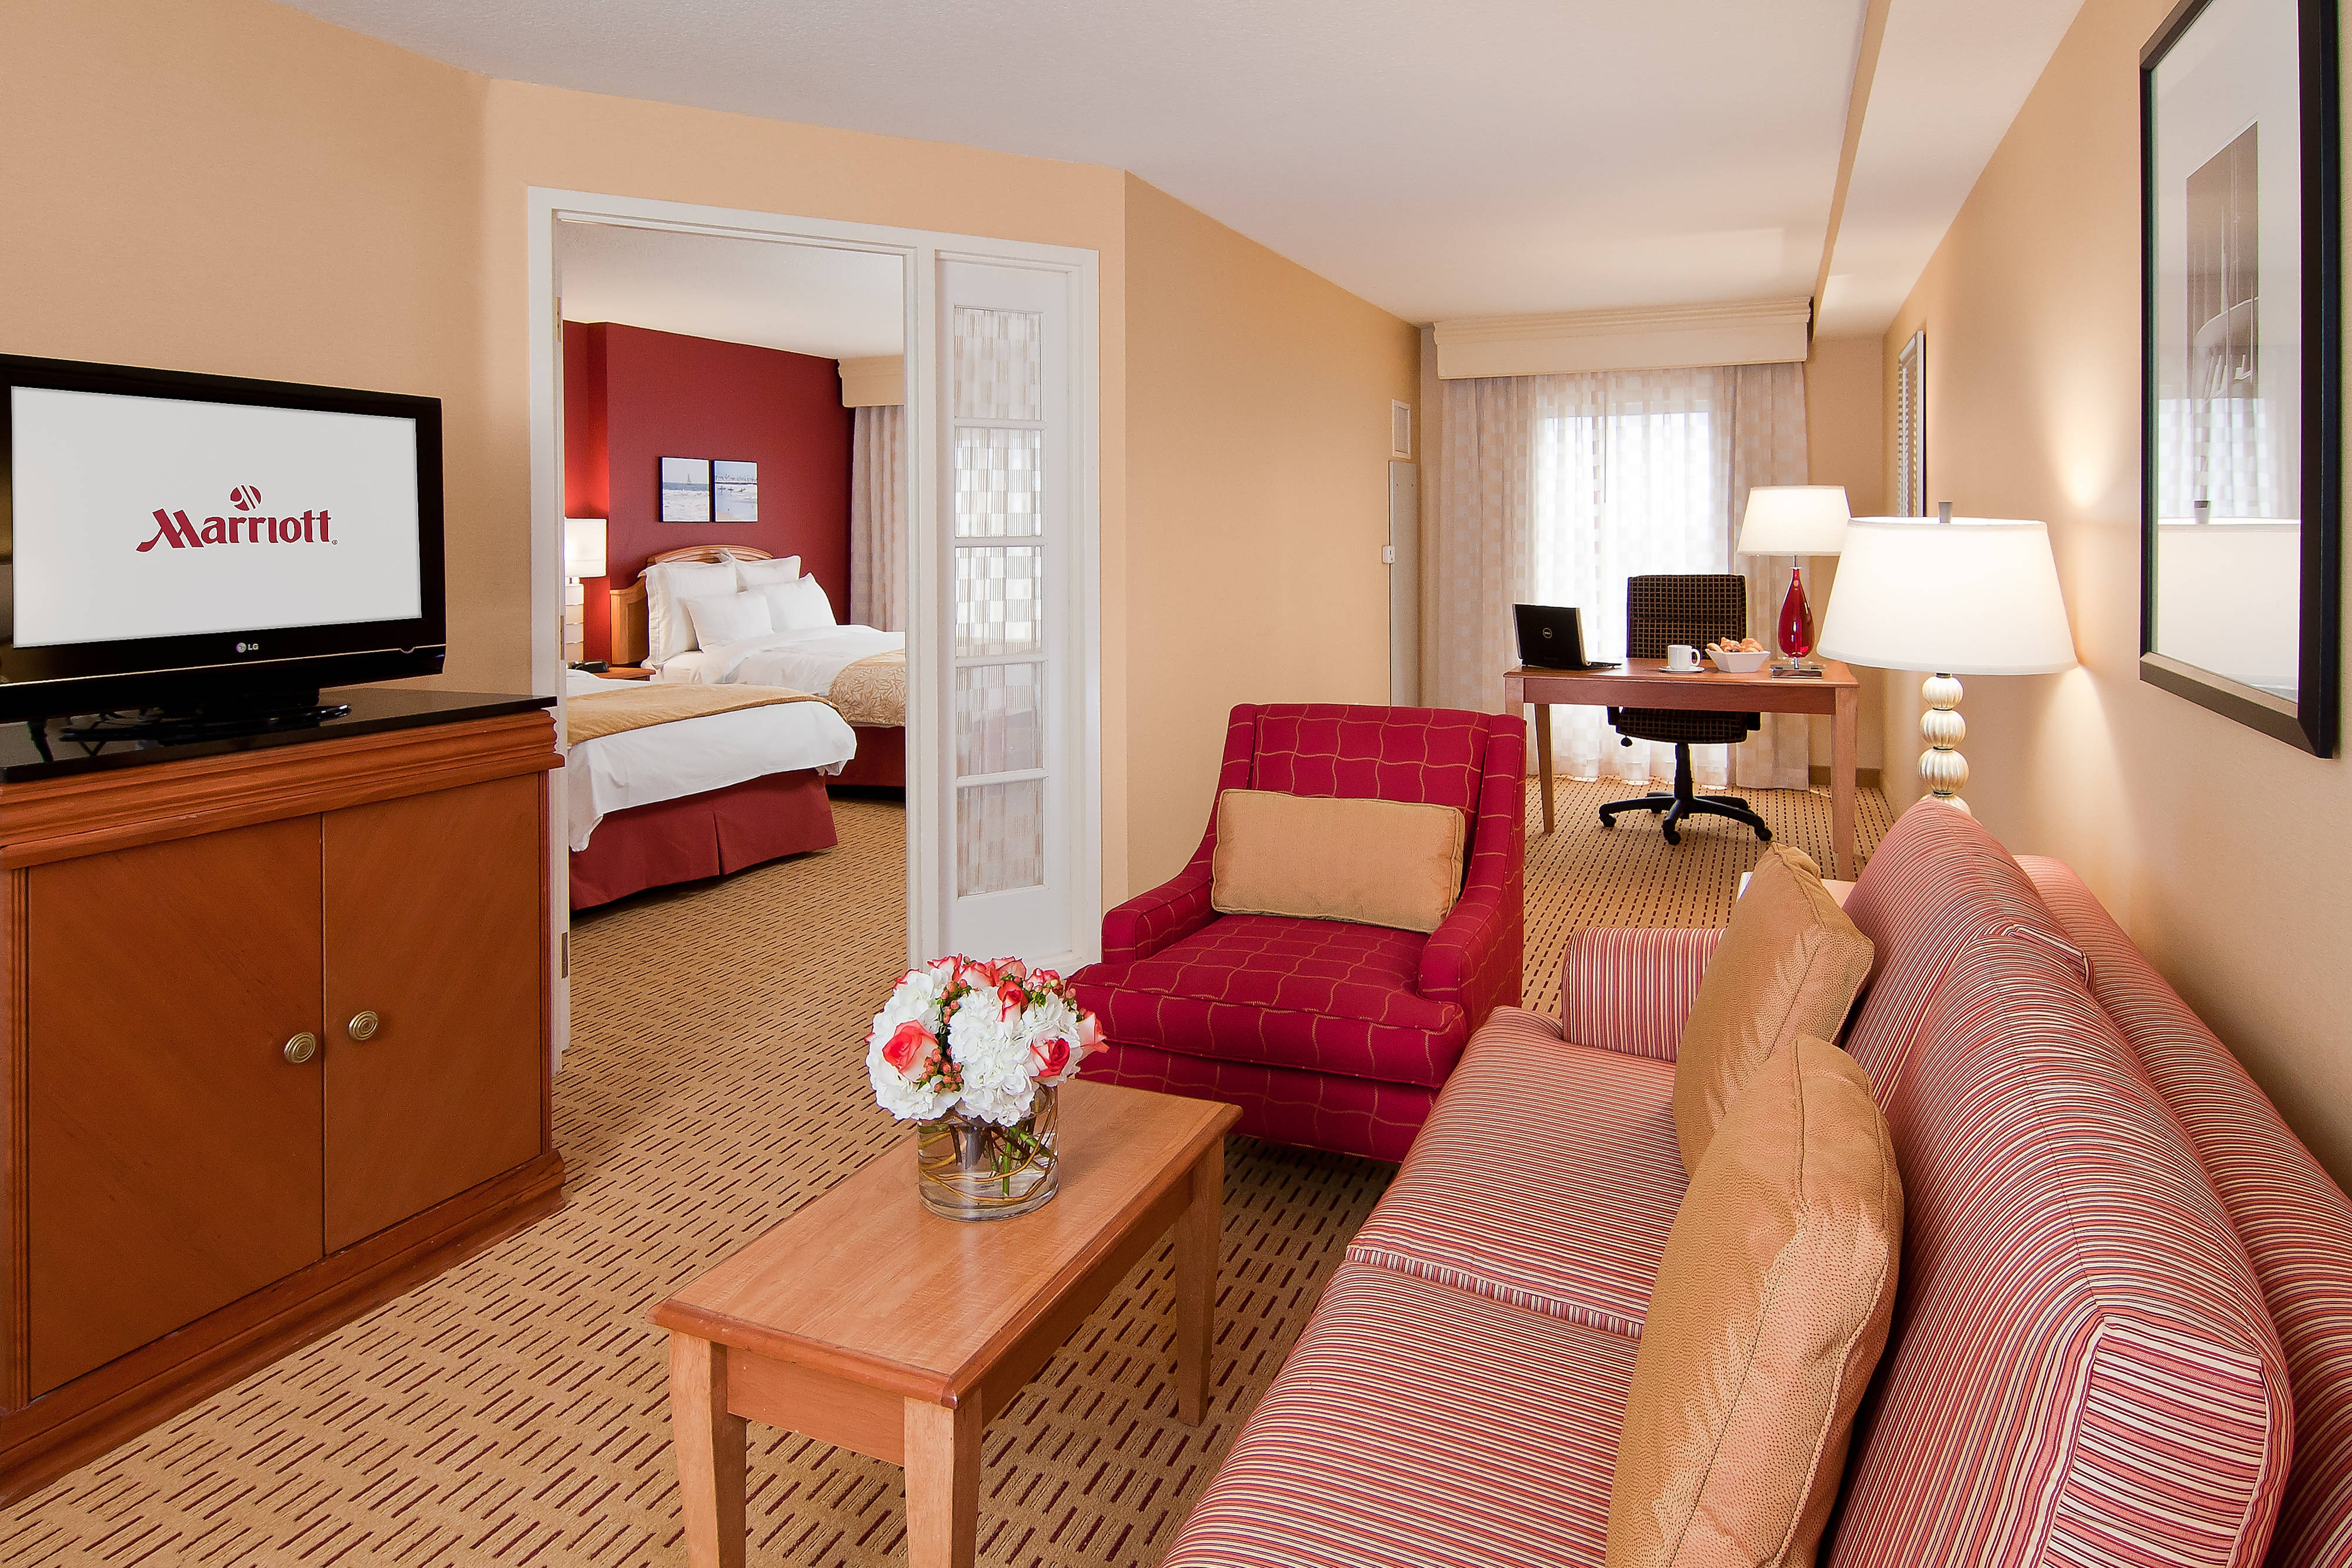 child sleeper sofa high quality low cost anaheim hotel | marriott suites guest room ...